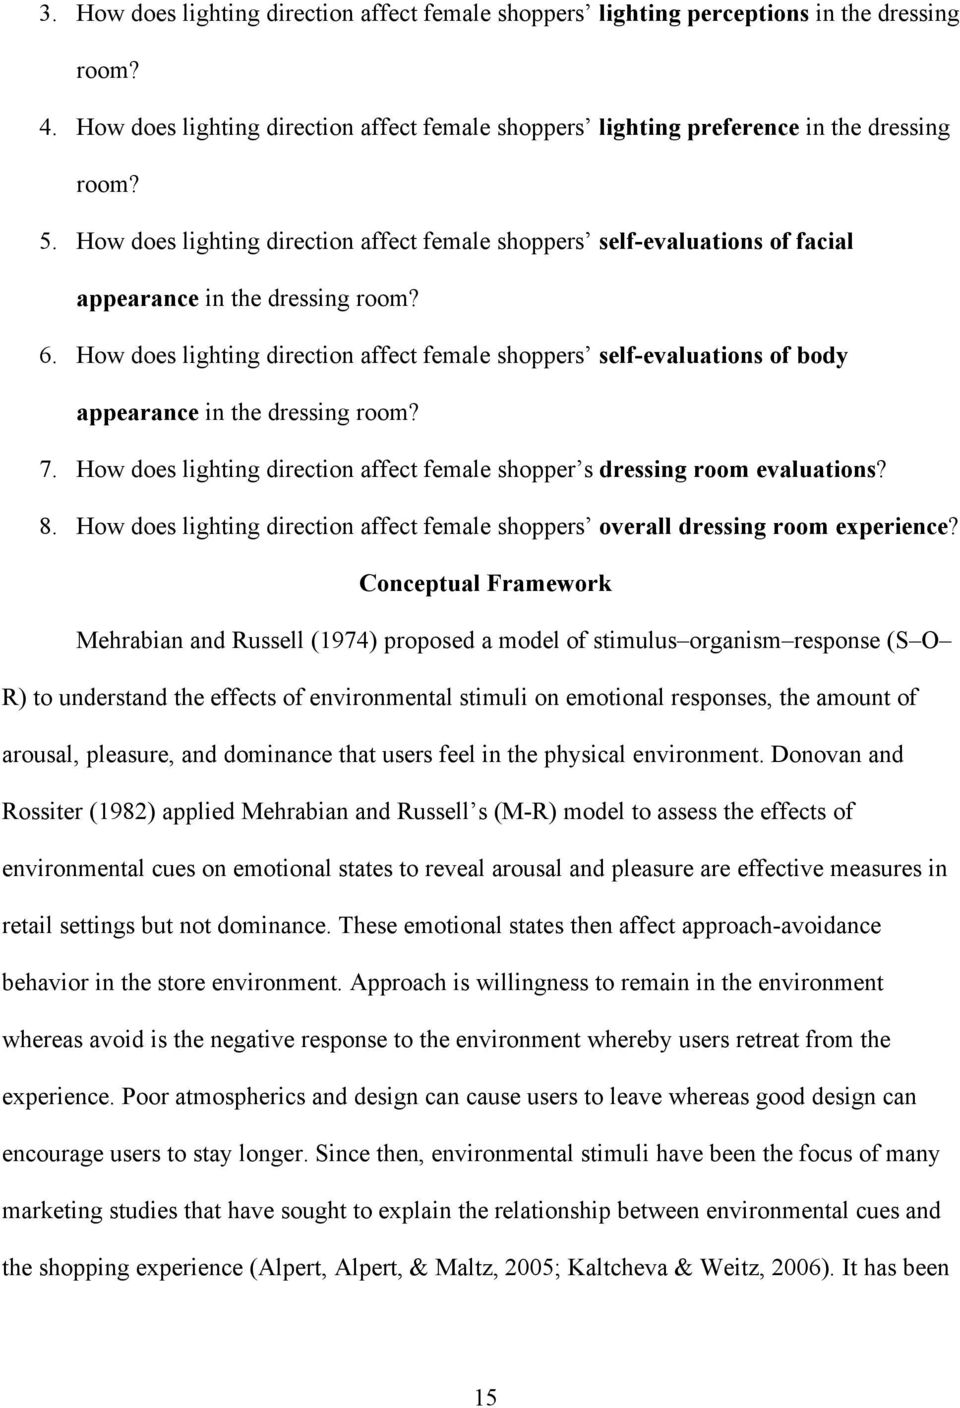 How does lighting direction affect female shoppers self-evaluations of body appearance in the dressing room? 7. How does lighting direction affect female shopper s dressing room evaluations? 8.